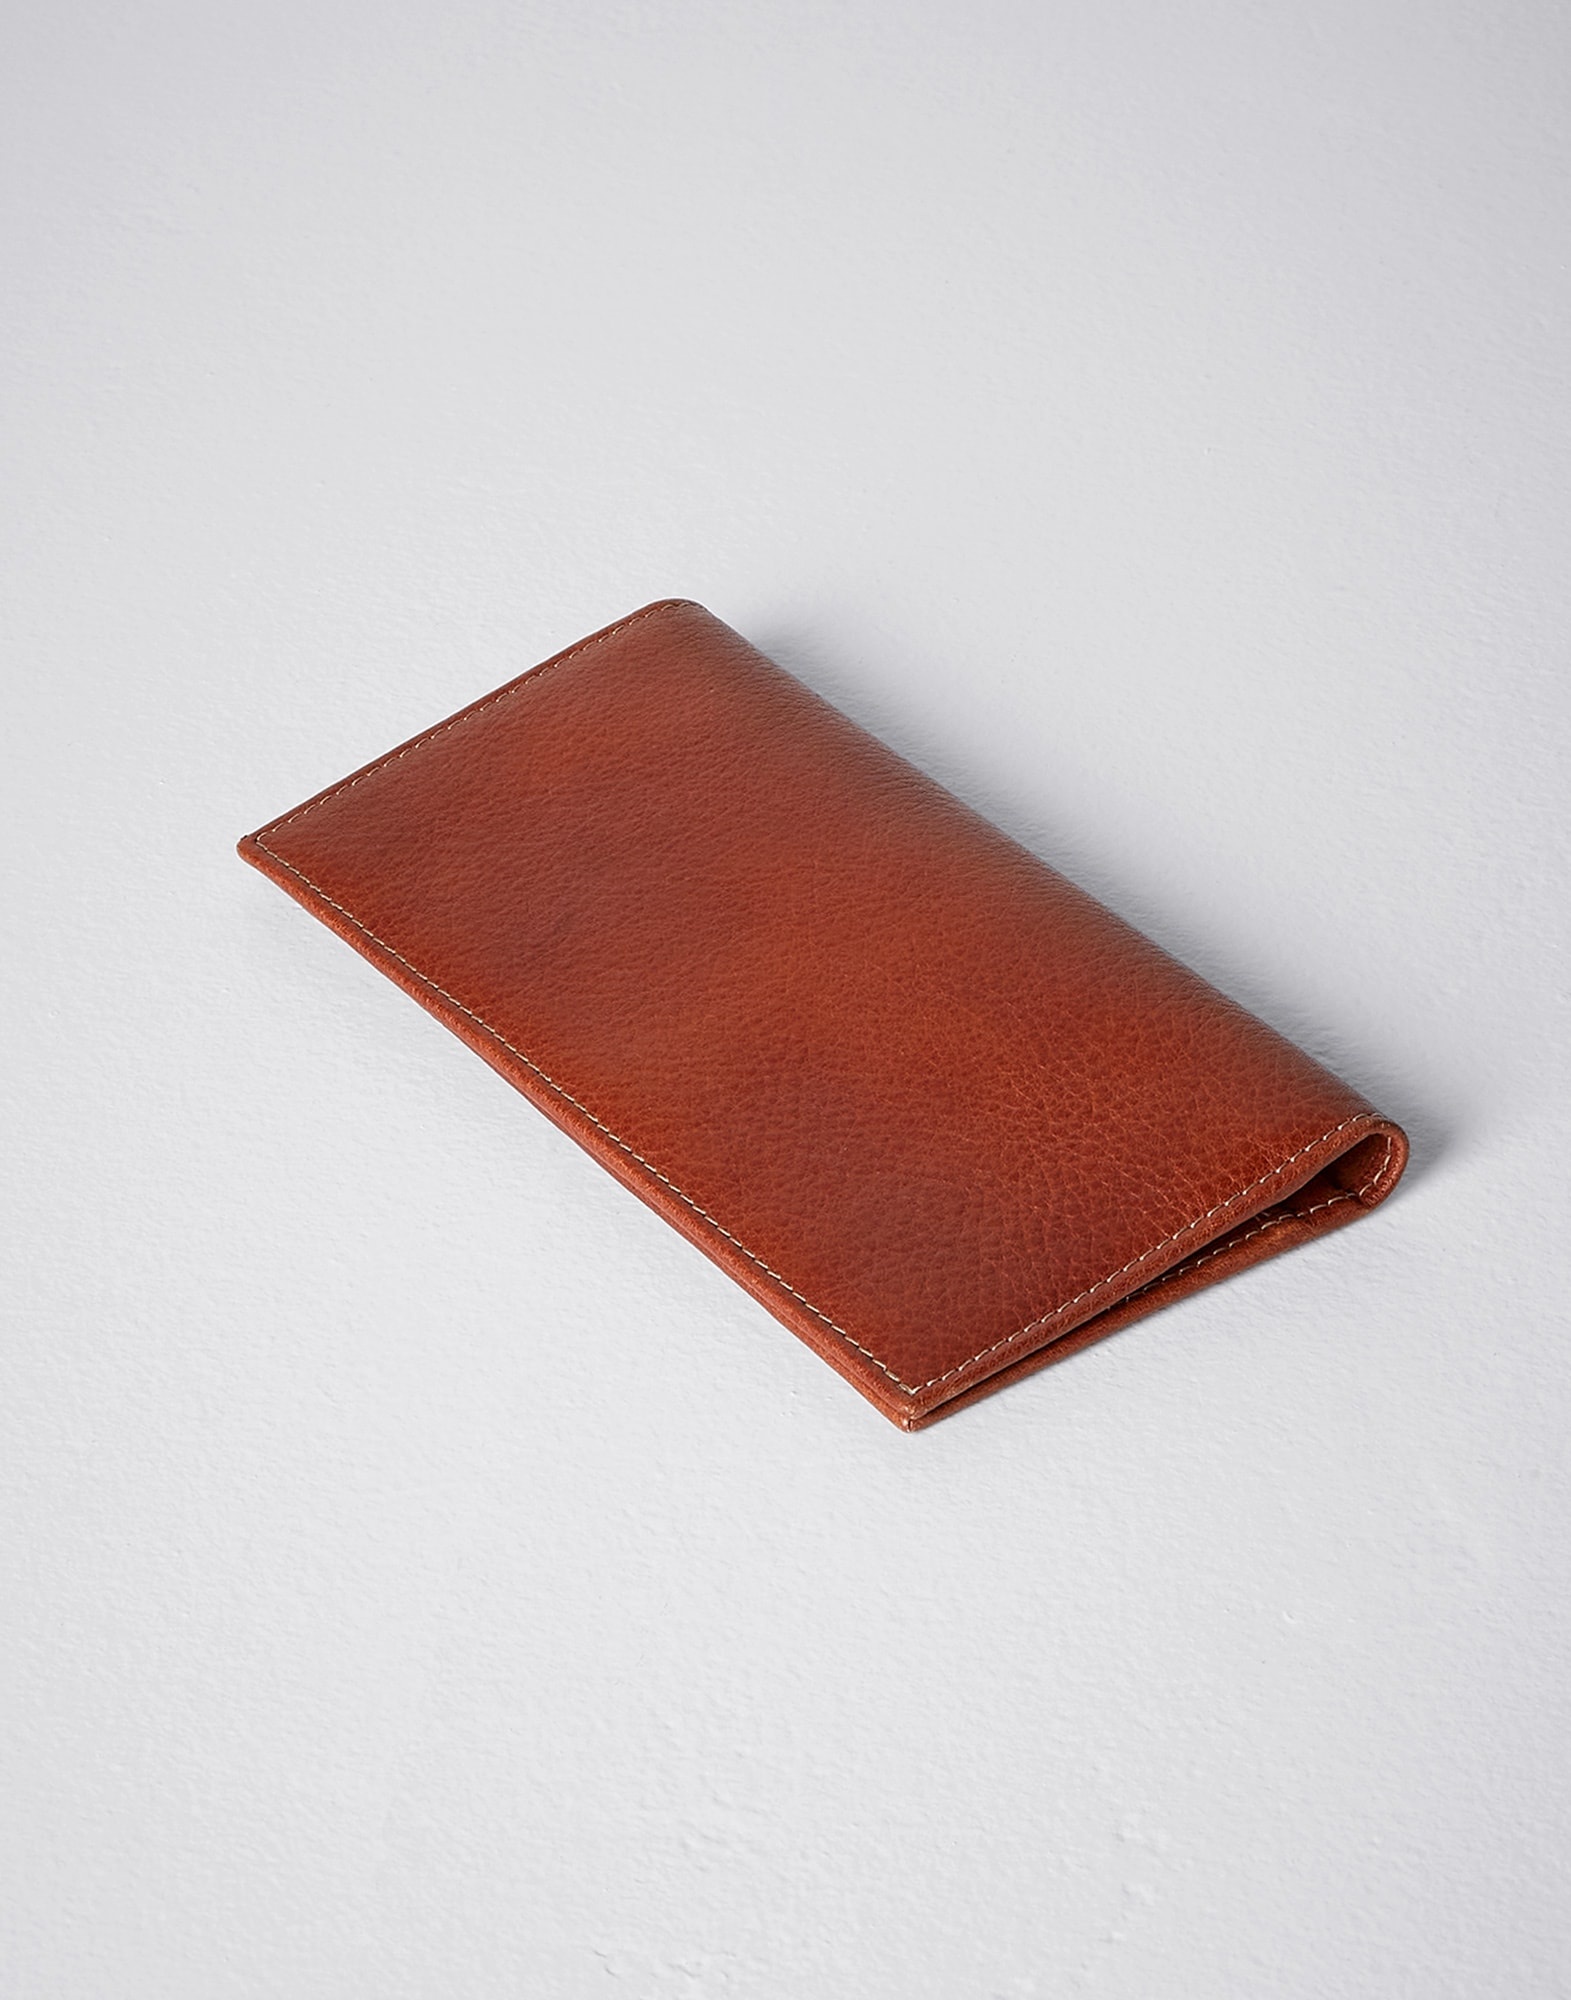 Card Holder - Back view